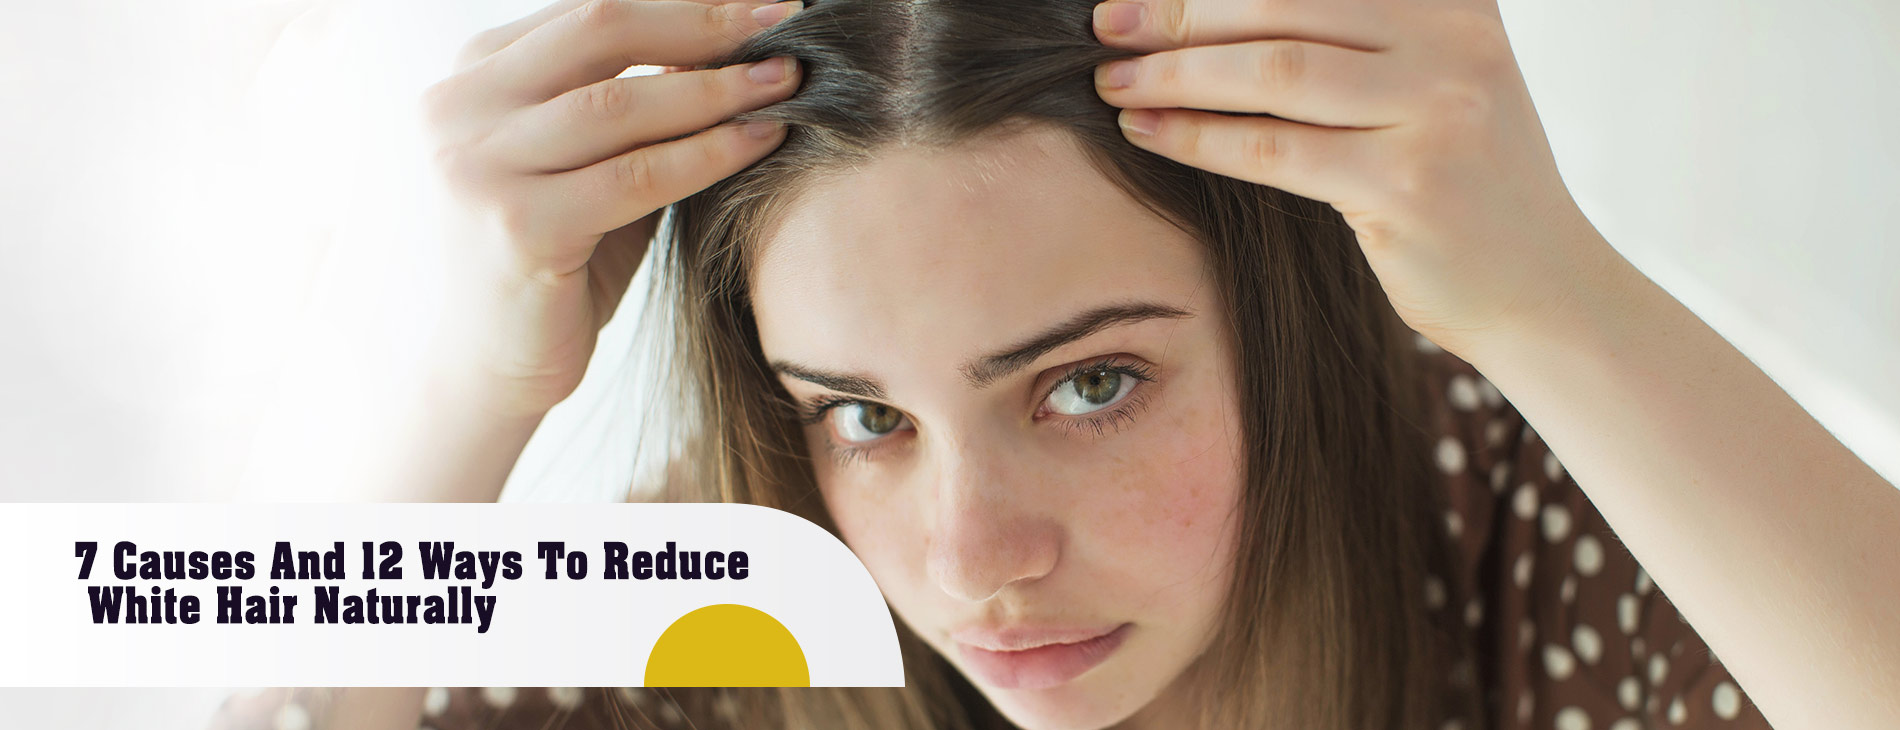 7-Causes-And-12-Ways-To-Reduce-White-Hair-Naturally